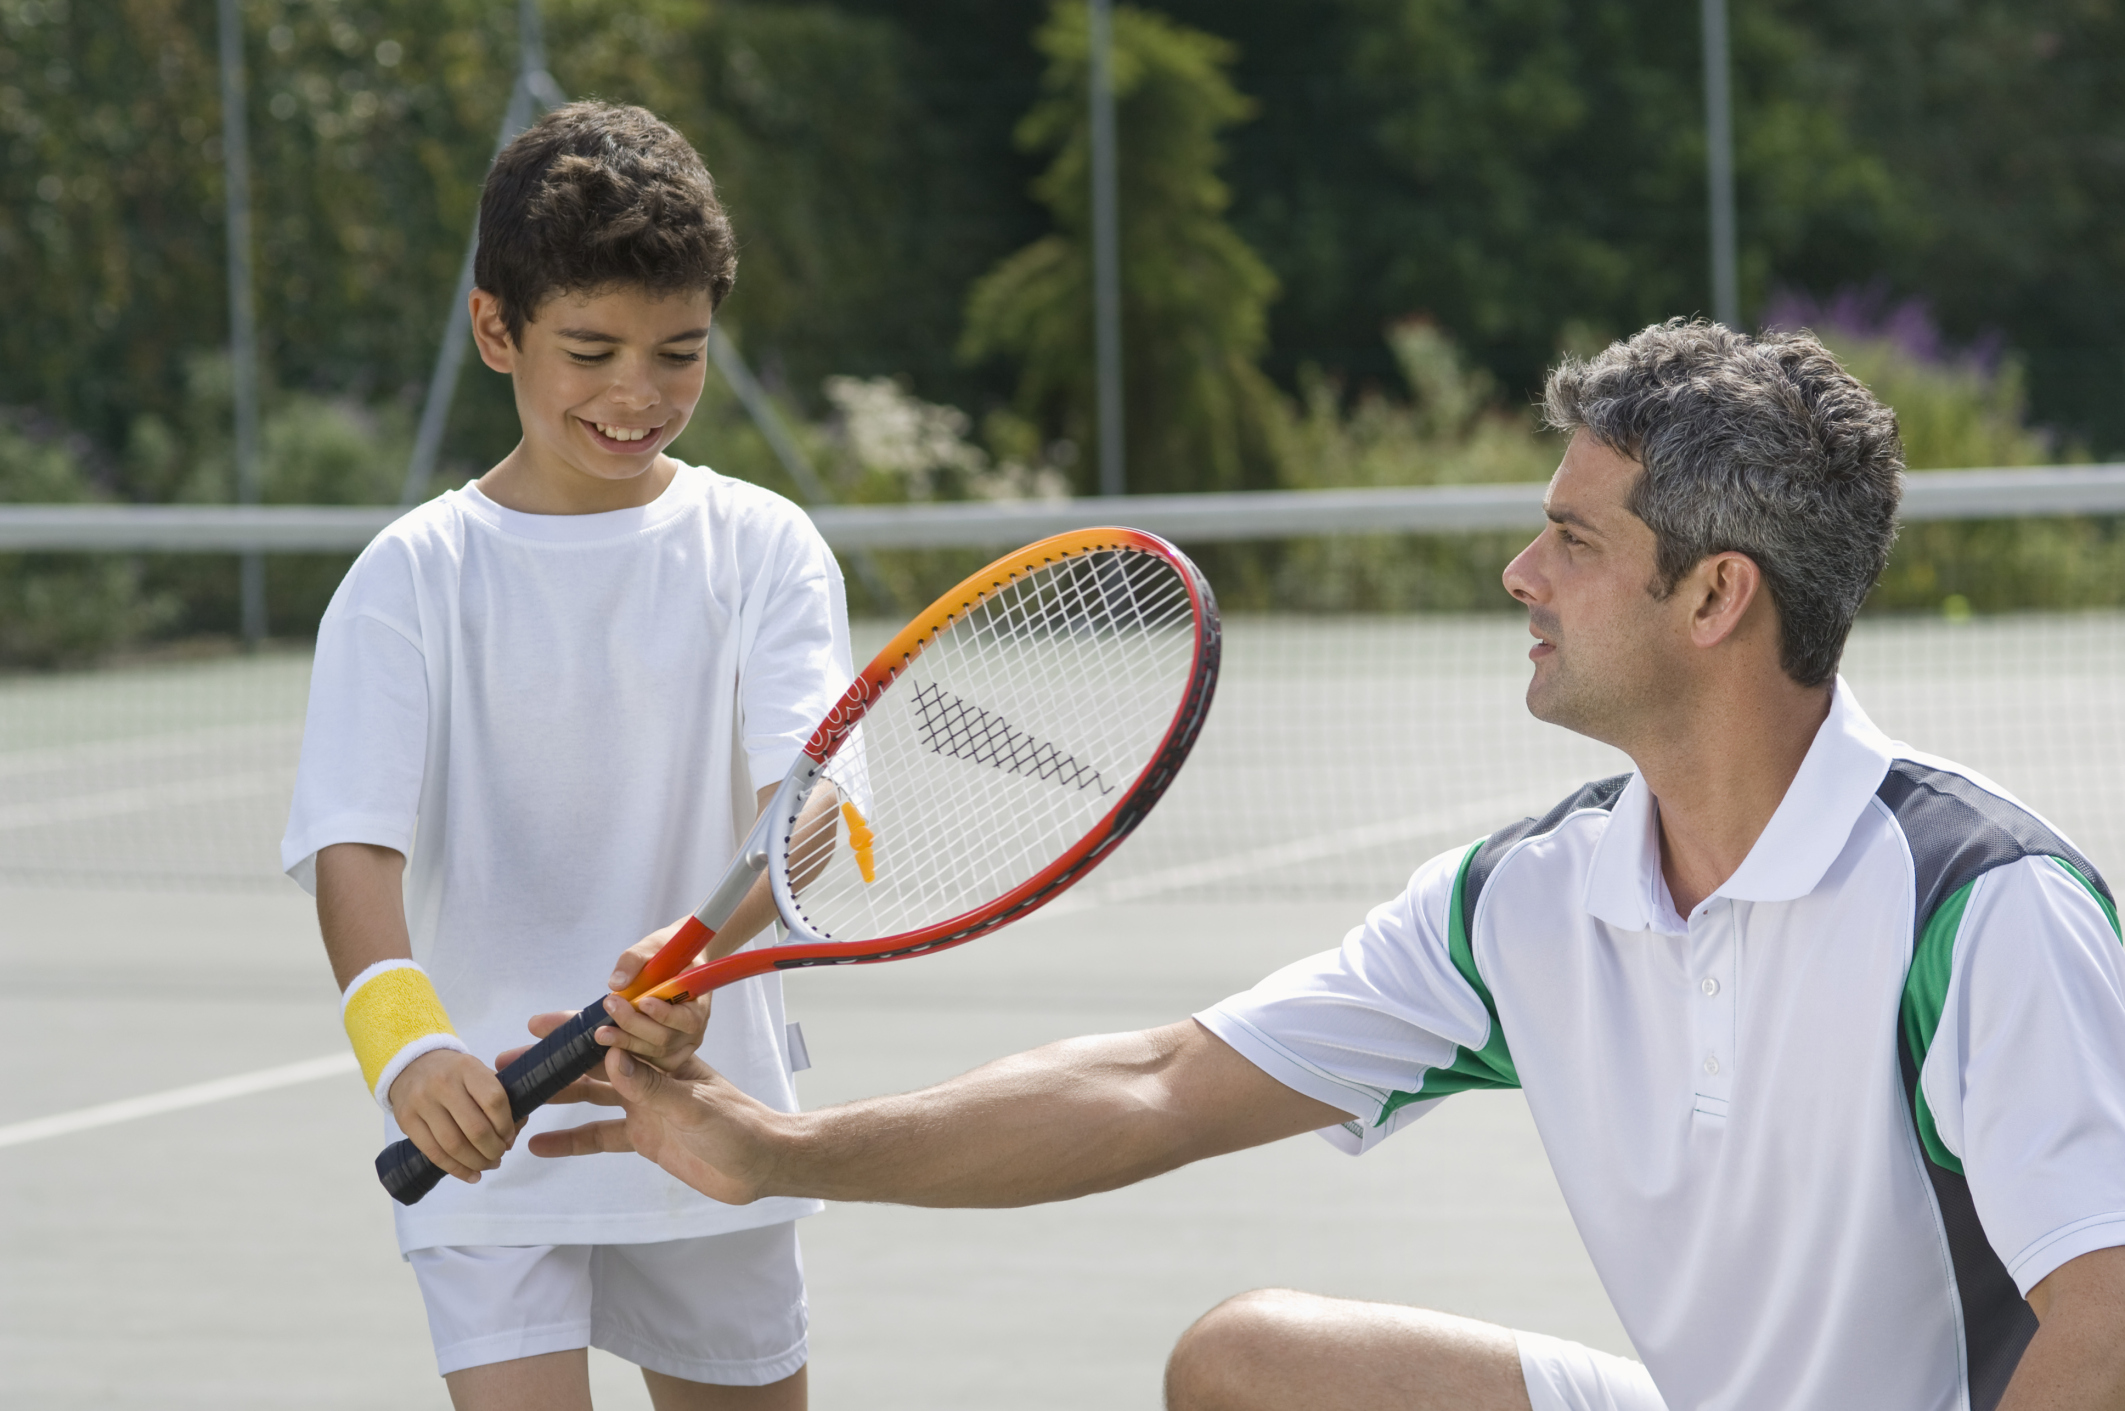 Main functions and advantages of sports